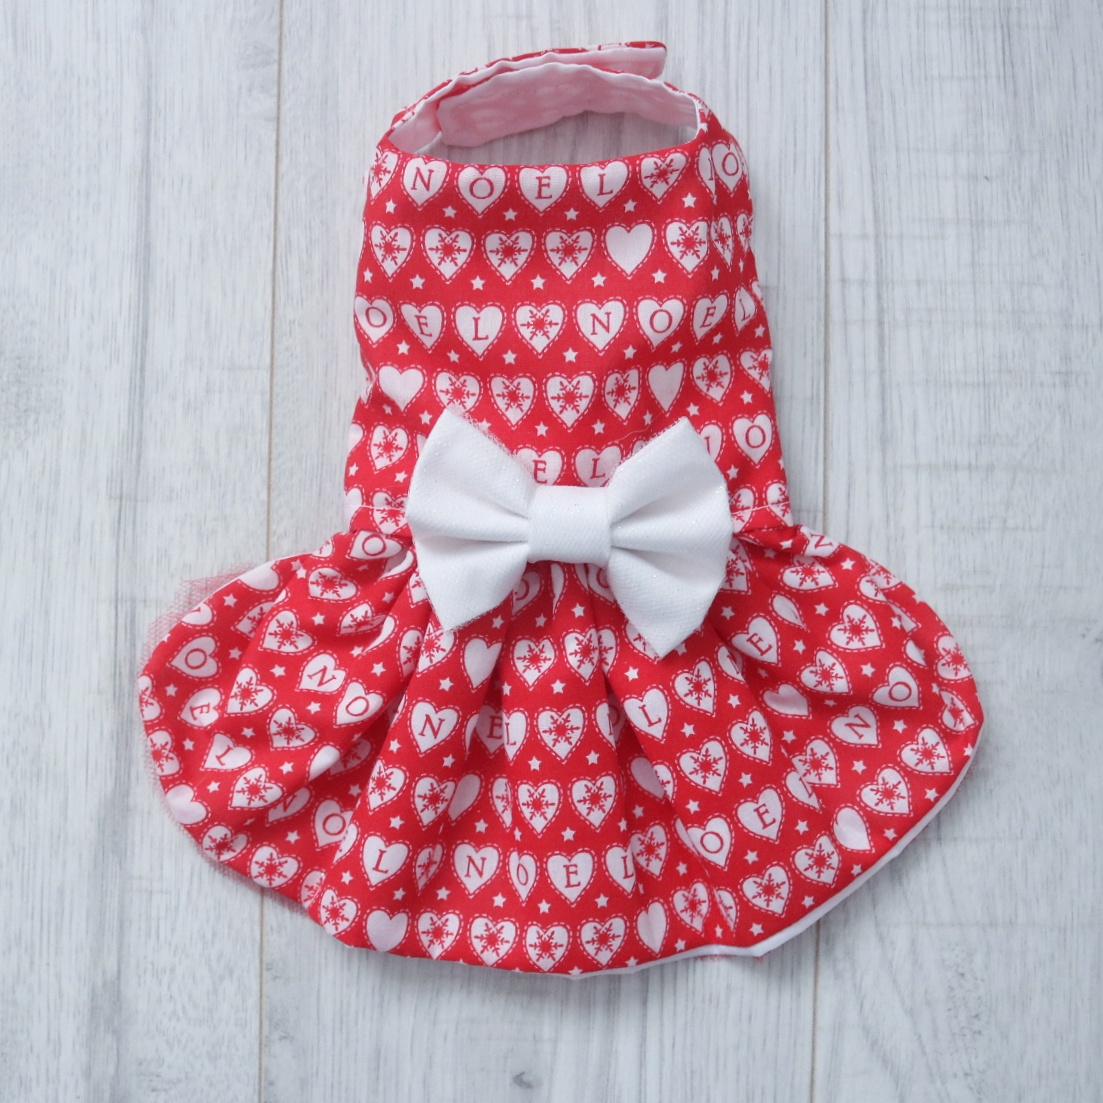 28796c177165 Red Noel Christmas Dog Dress with White Sparkly Bow - Pretty Little Paws